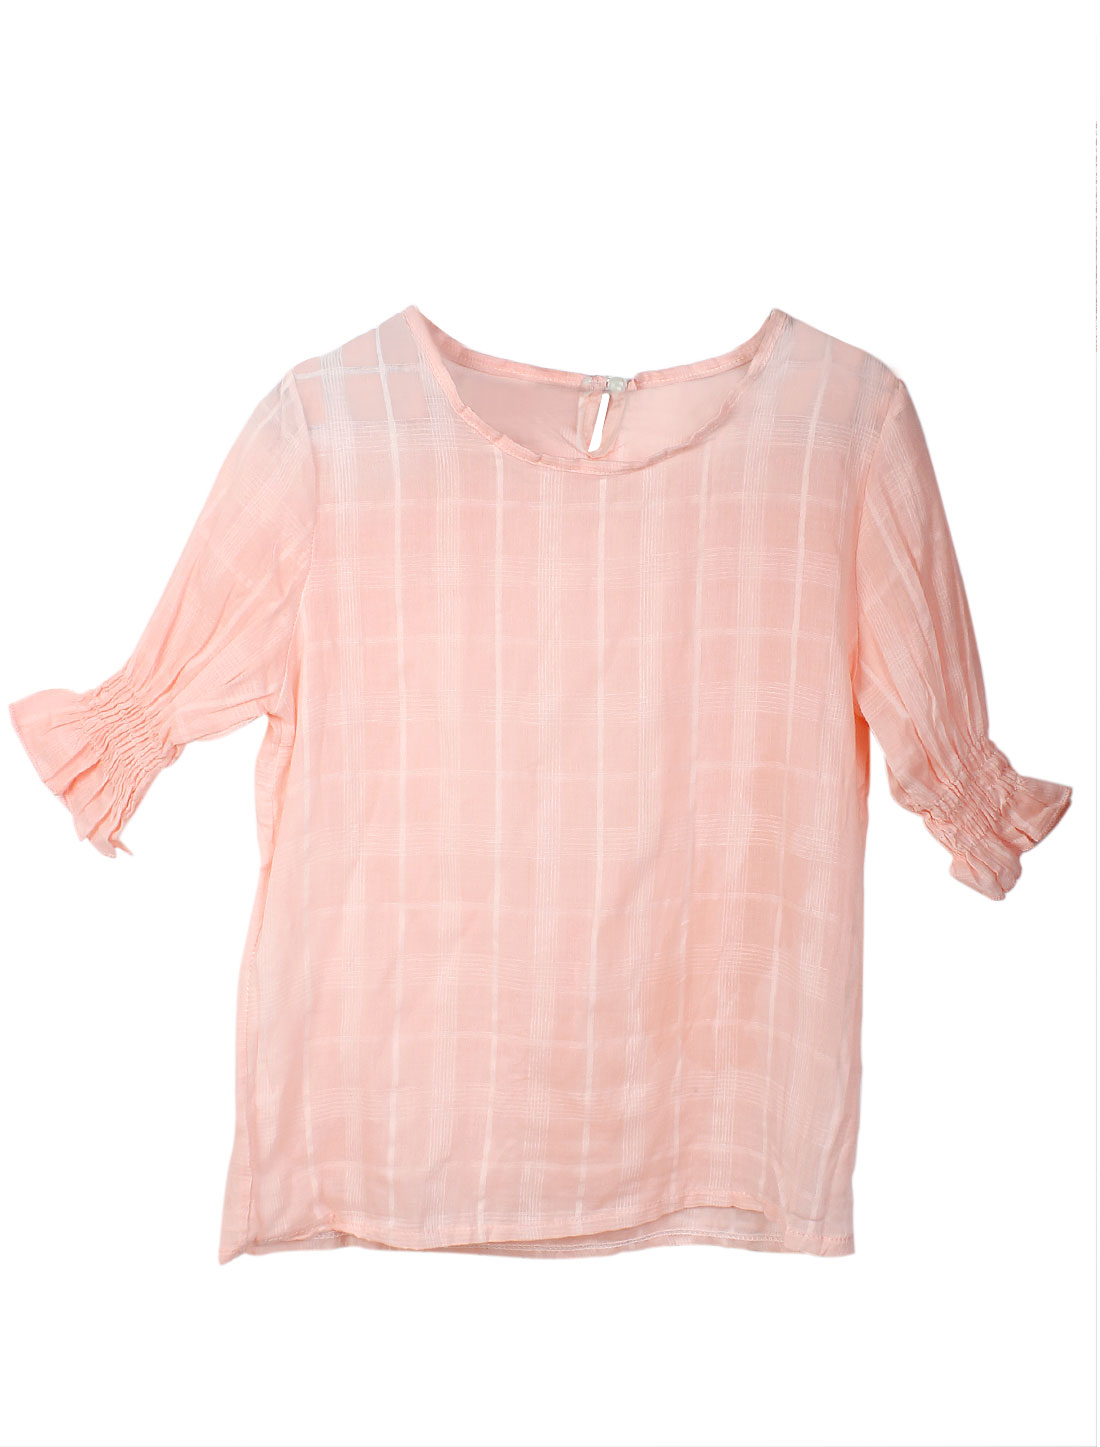 Ladies Round Neck Short Sleeve Buttoned Elegant Shirts Pink S